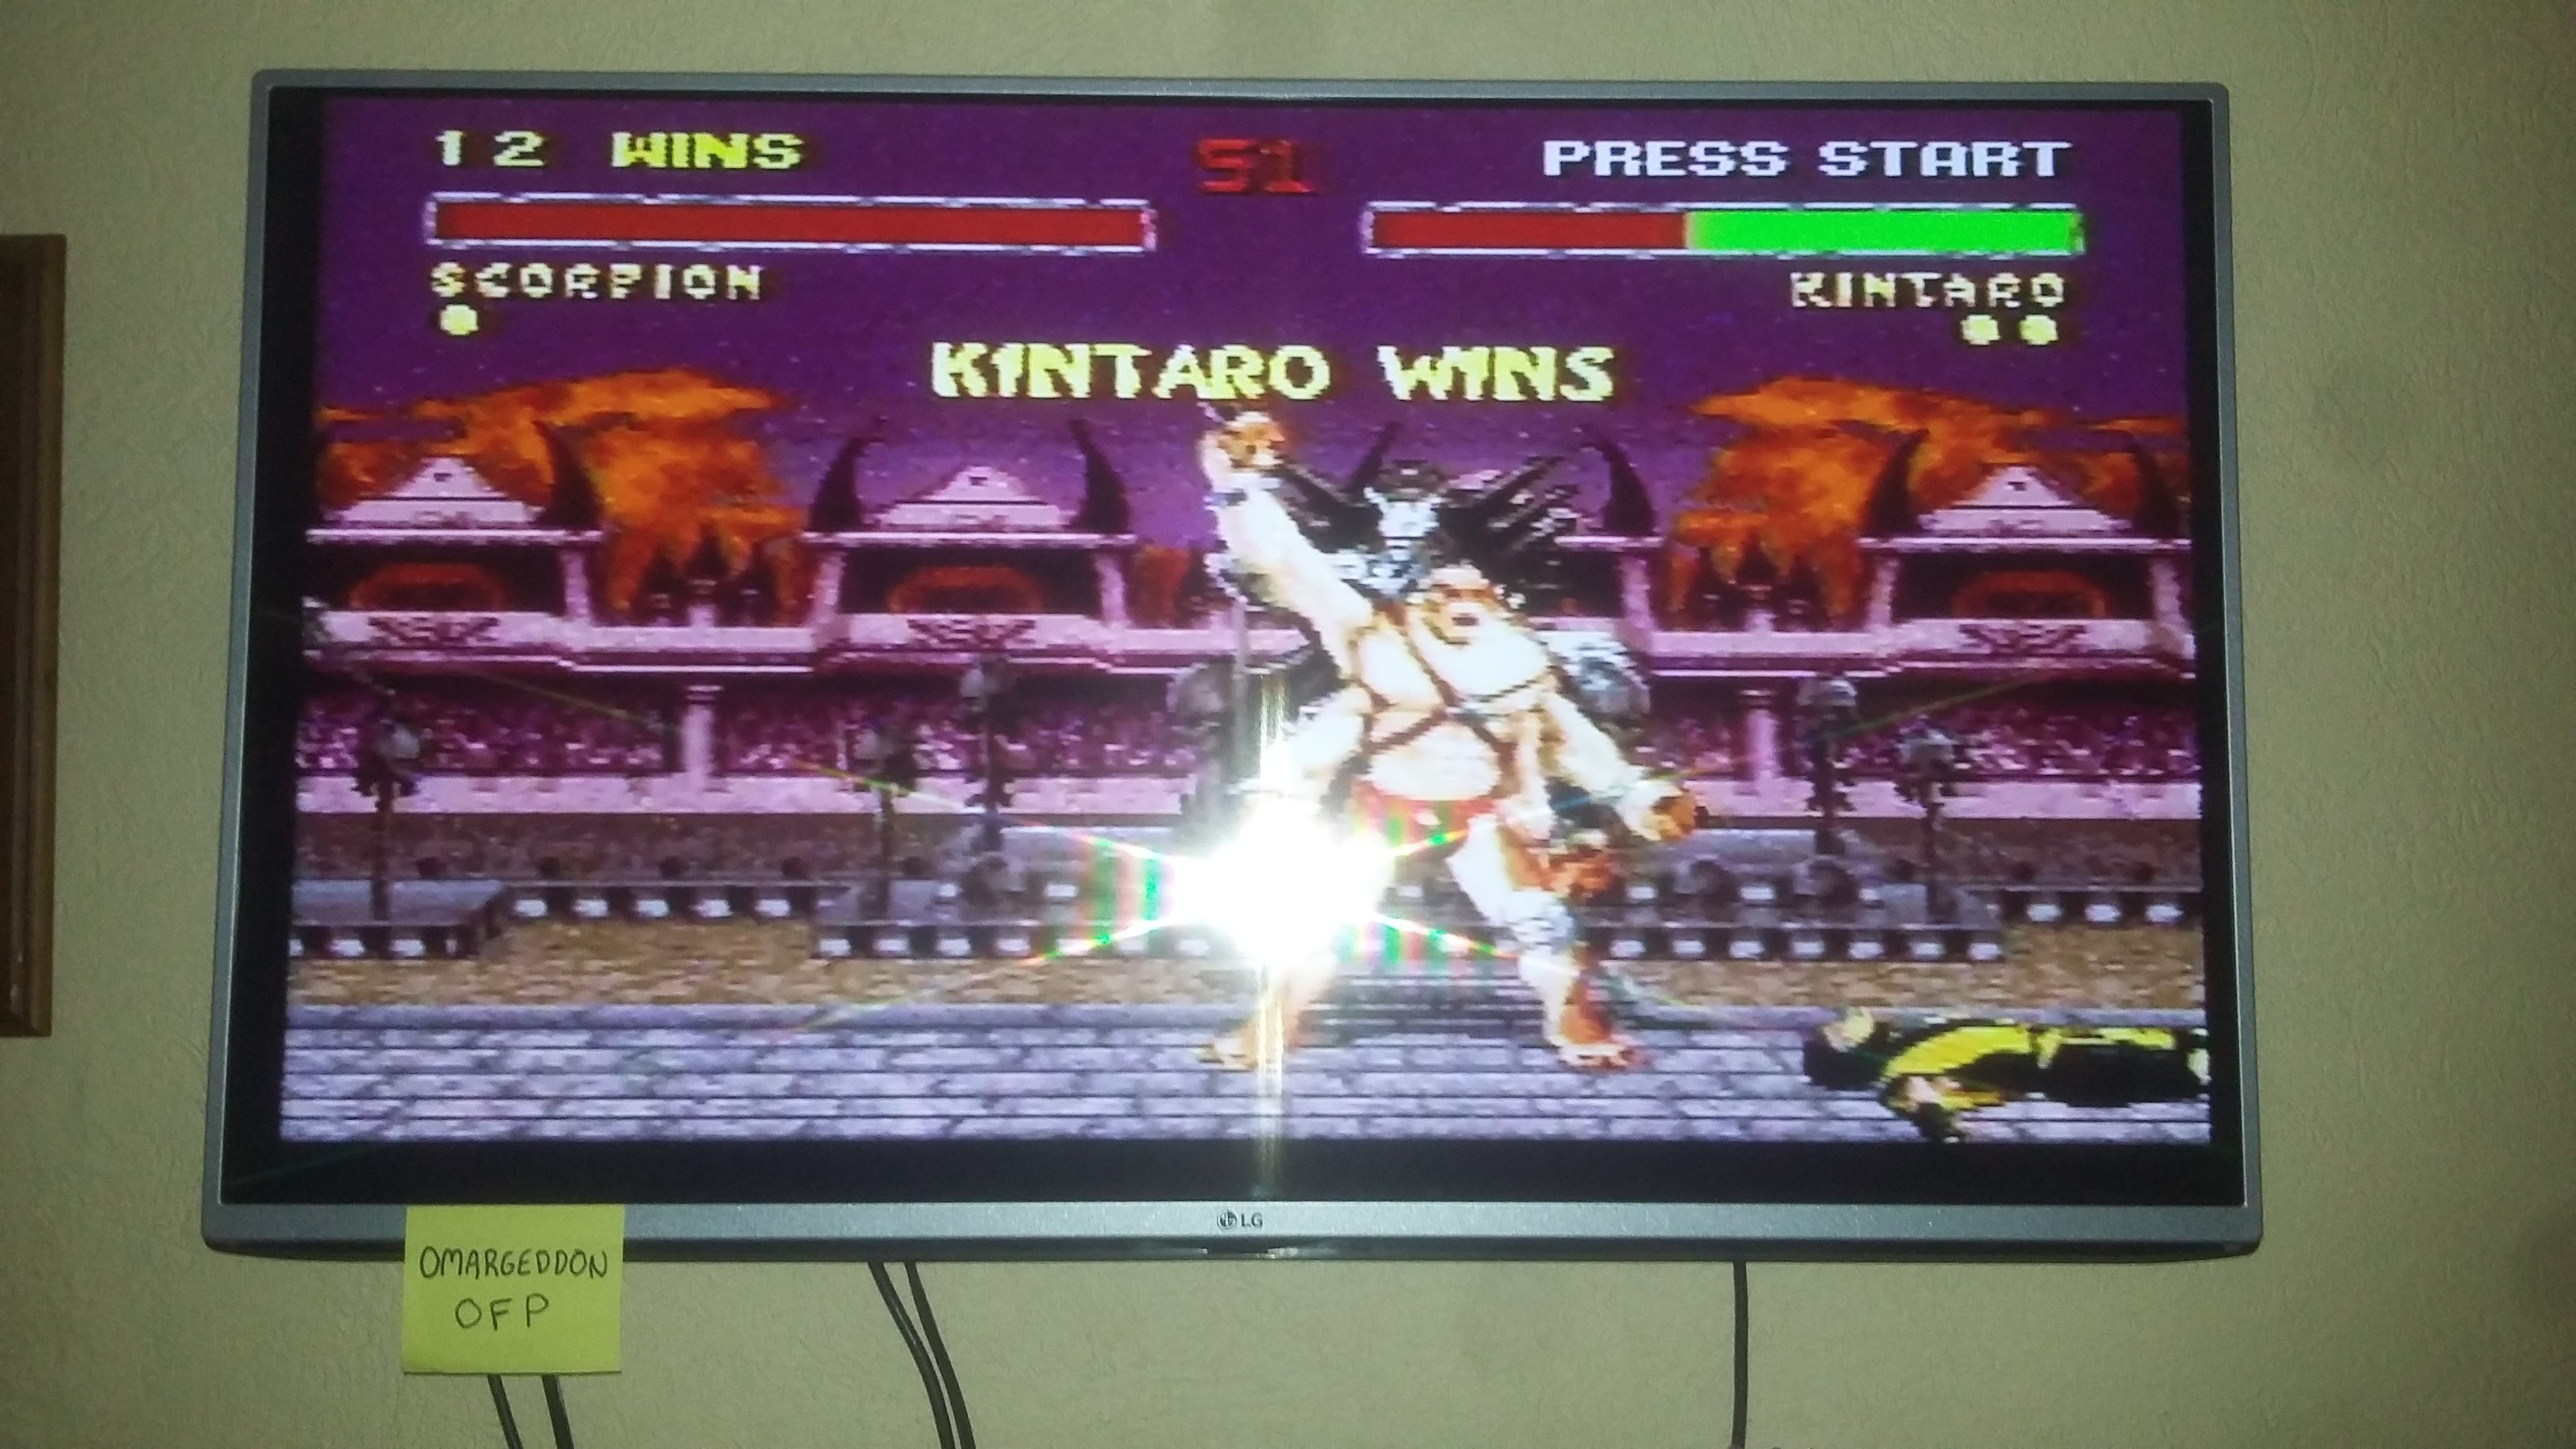 Mortal Kombat II: Very Easy [Win Streak] 12 points